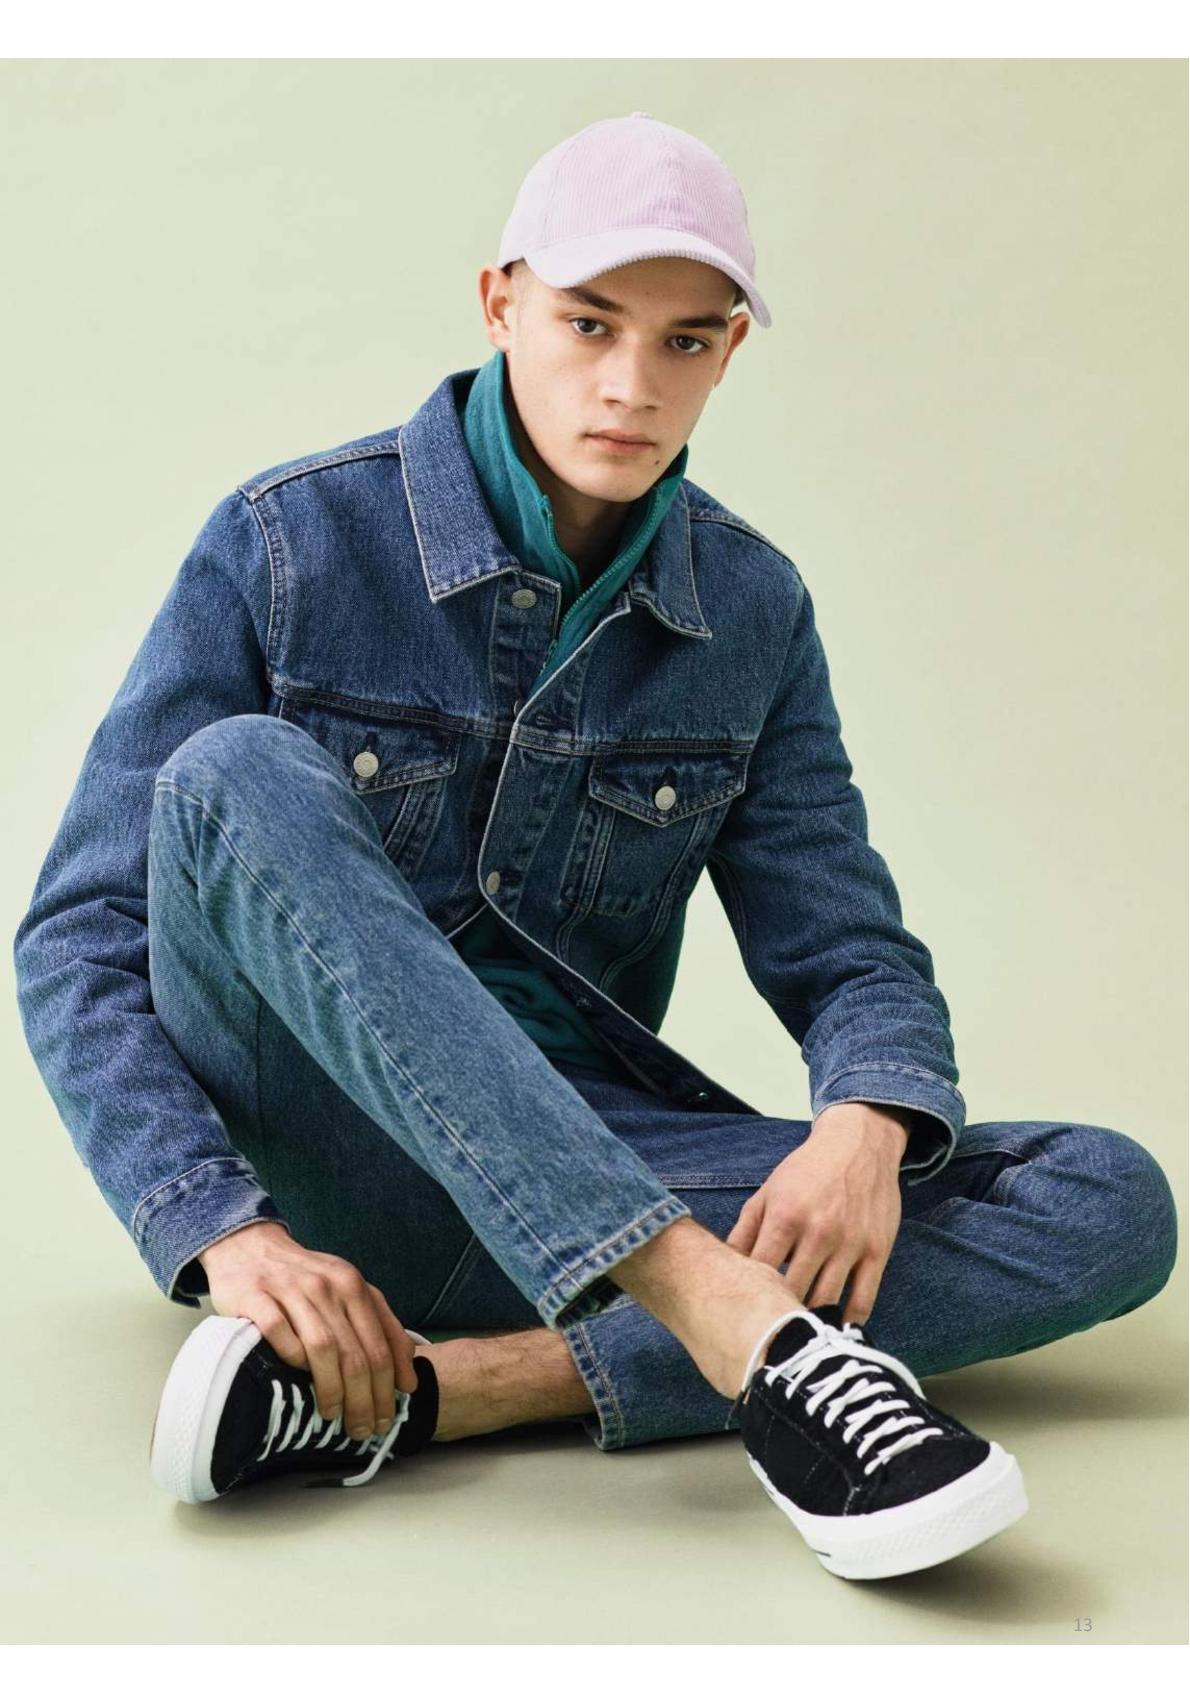 aa_weekday_ss17_lookbook_jean_campaign_low_res-page-014.jpg